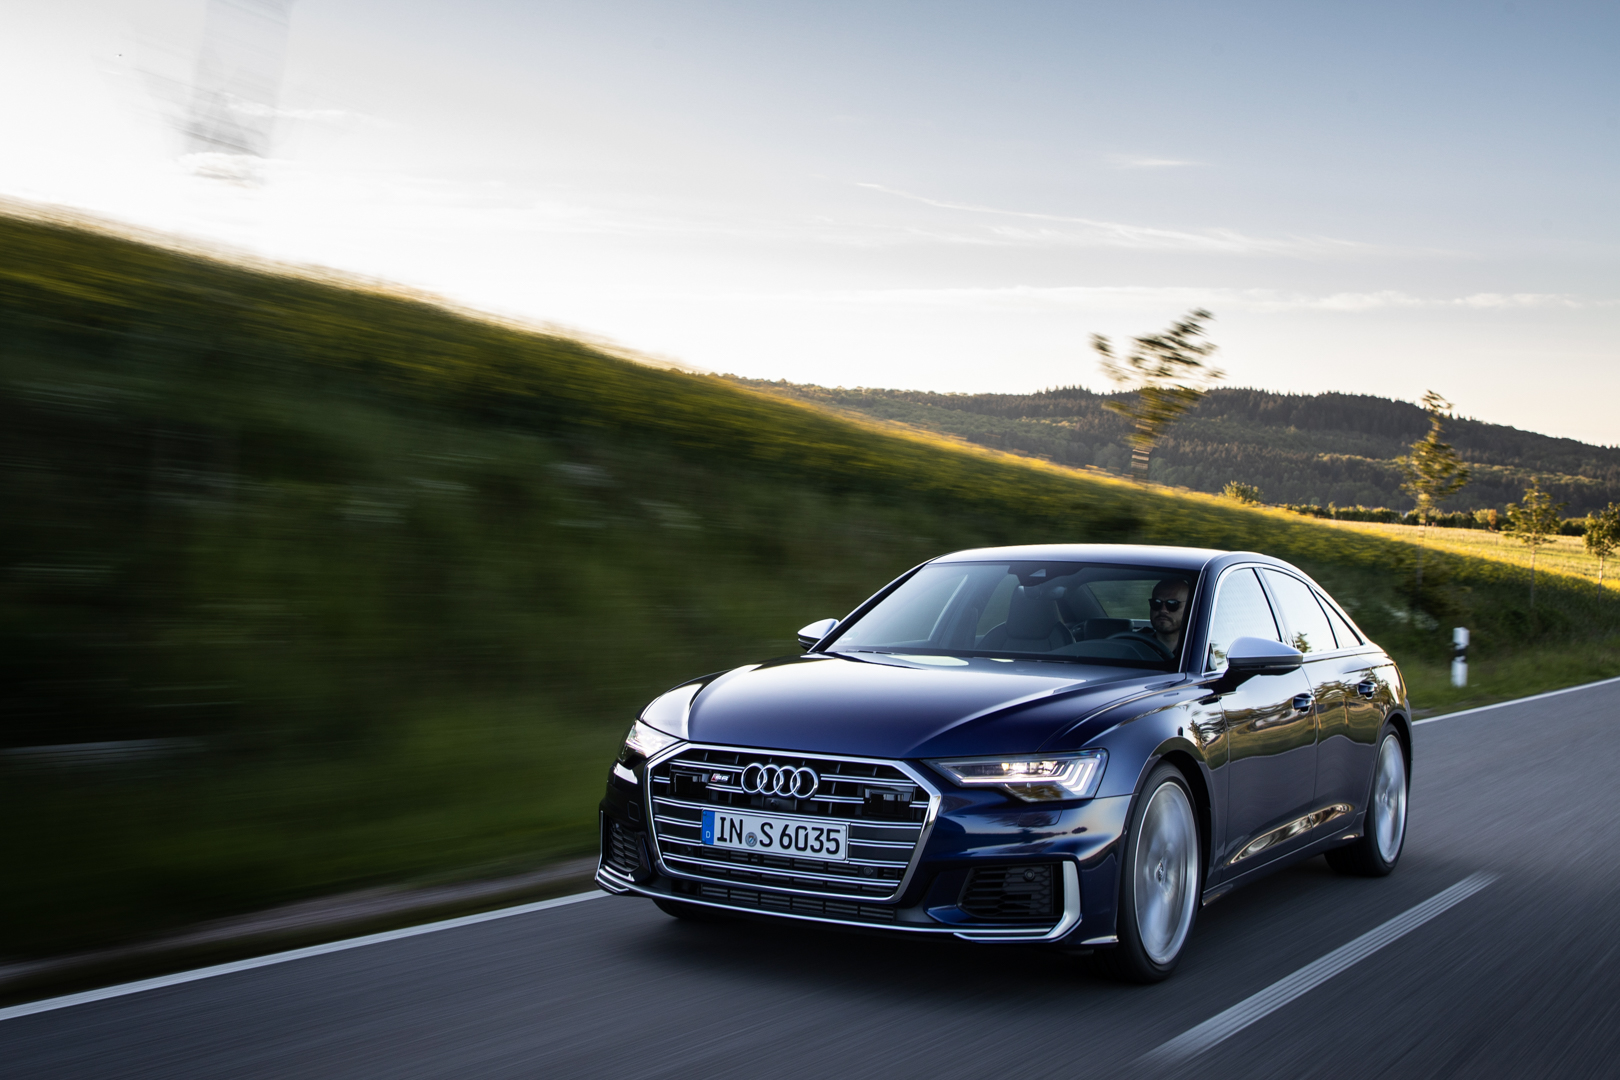 2020 Audi S6 Arrives in the US to Challenge the BMW M550i xDrive